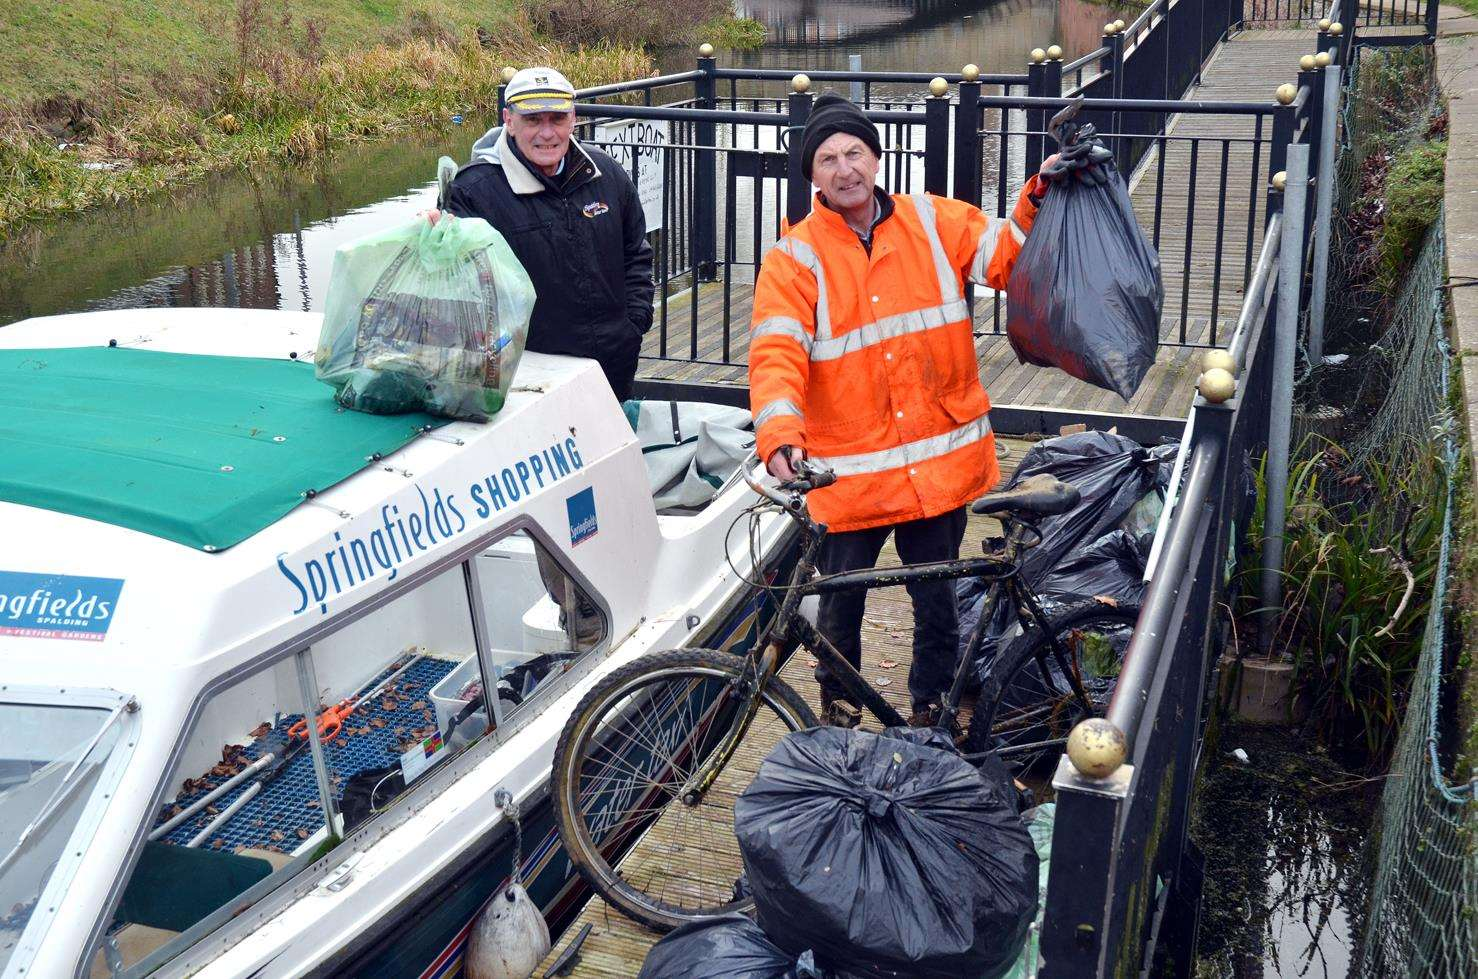 Anthony Grunwell and Ian Haynes with a bike and 18 bags of rubbish - a further ten bags were left out for council collection at a spot near the old fire station. (290119-14)